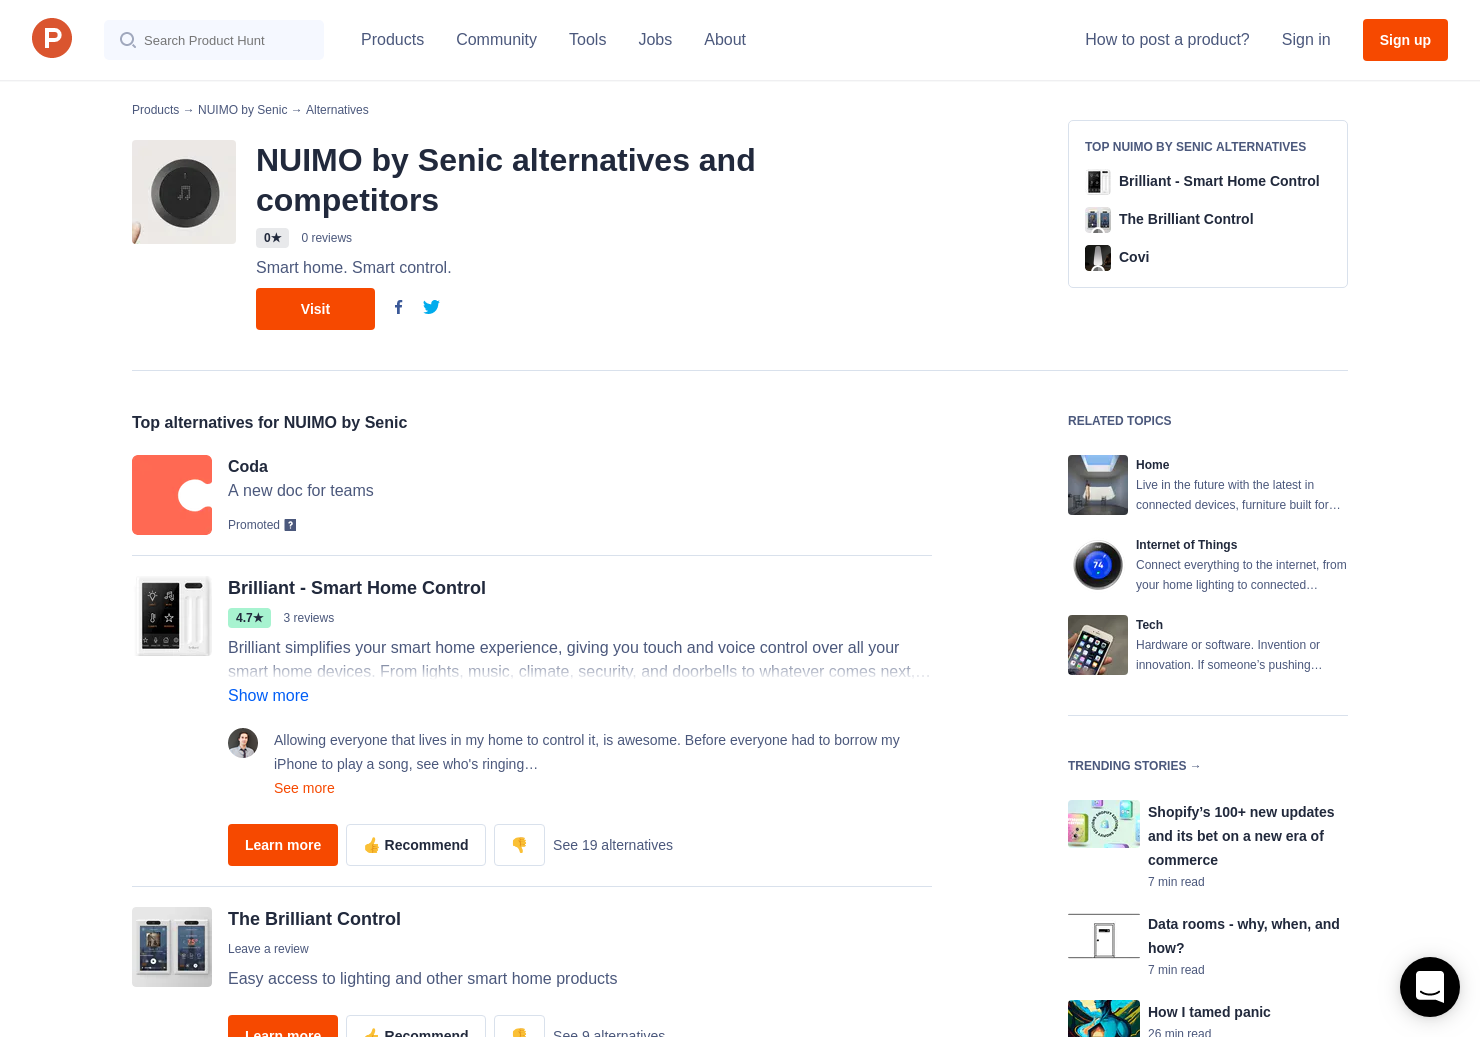 11 Alternatives to NUIMO by Senic   Product Hunt